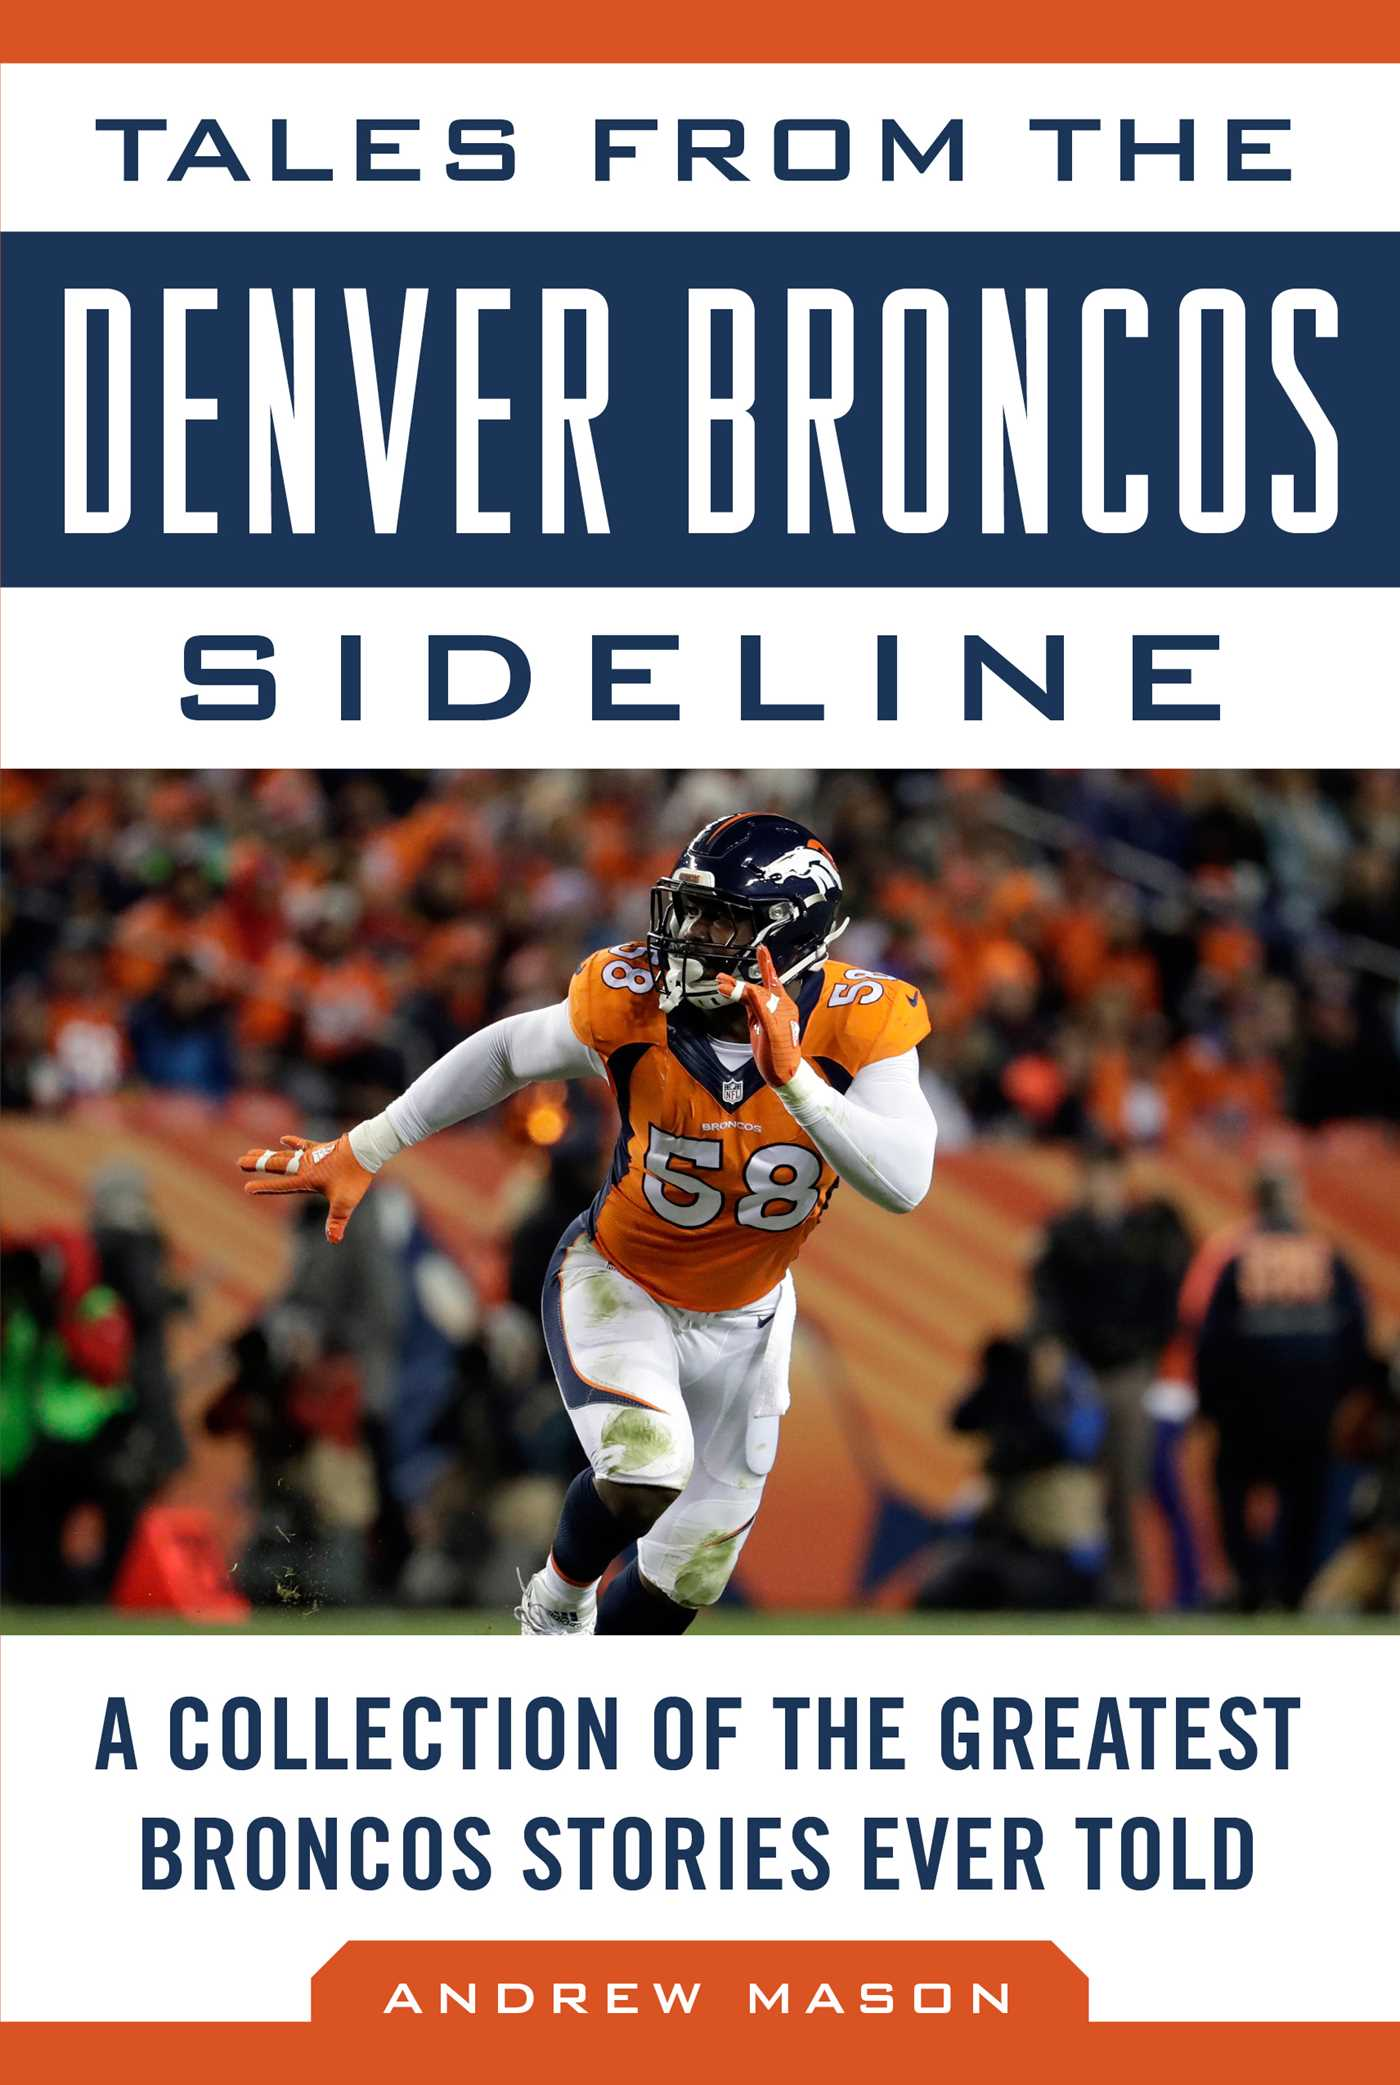 Book Cover Image (jpg): Tales from the Denver Broncos Sideline